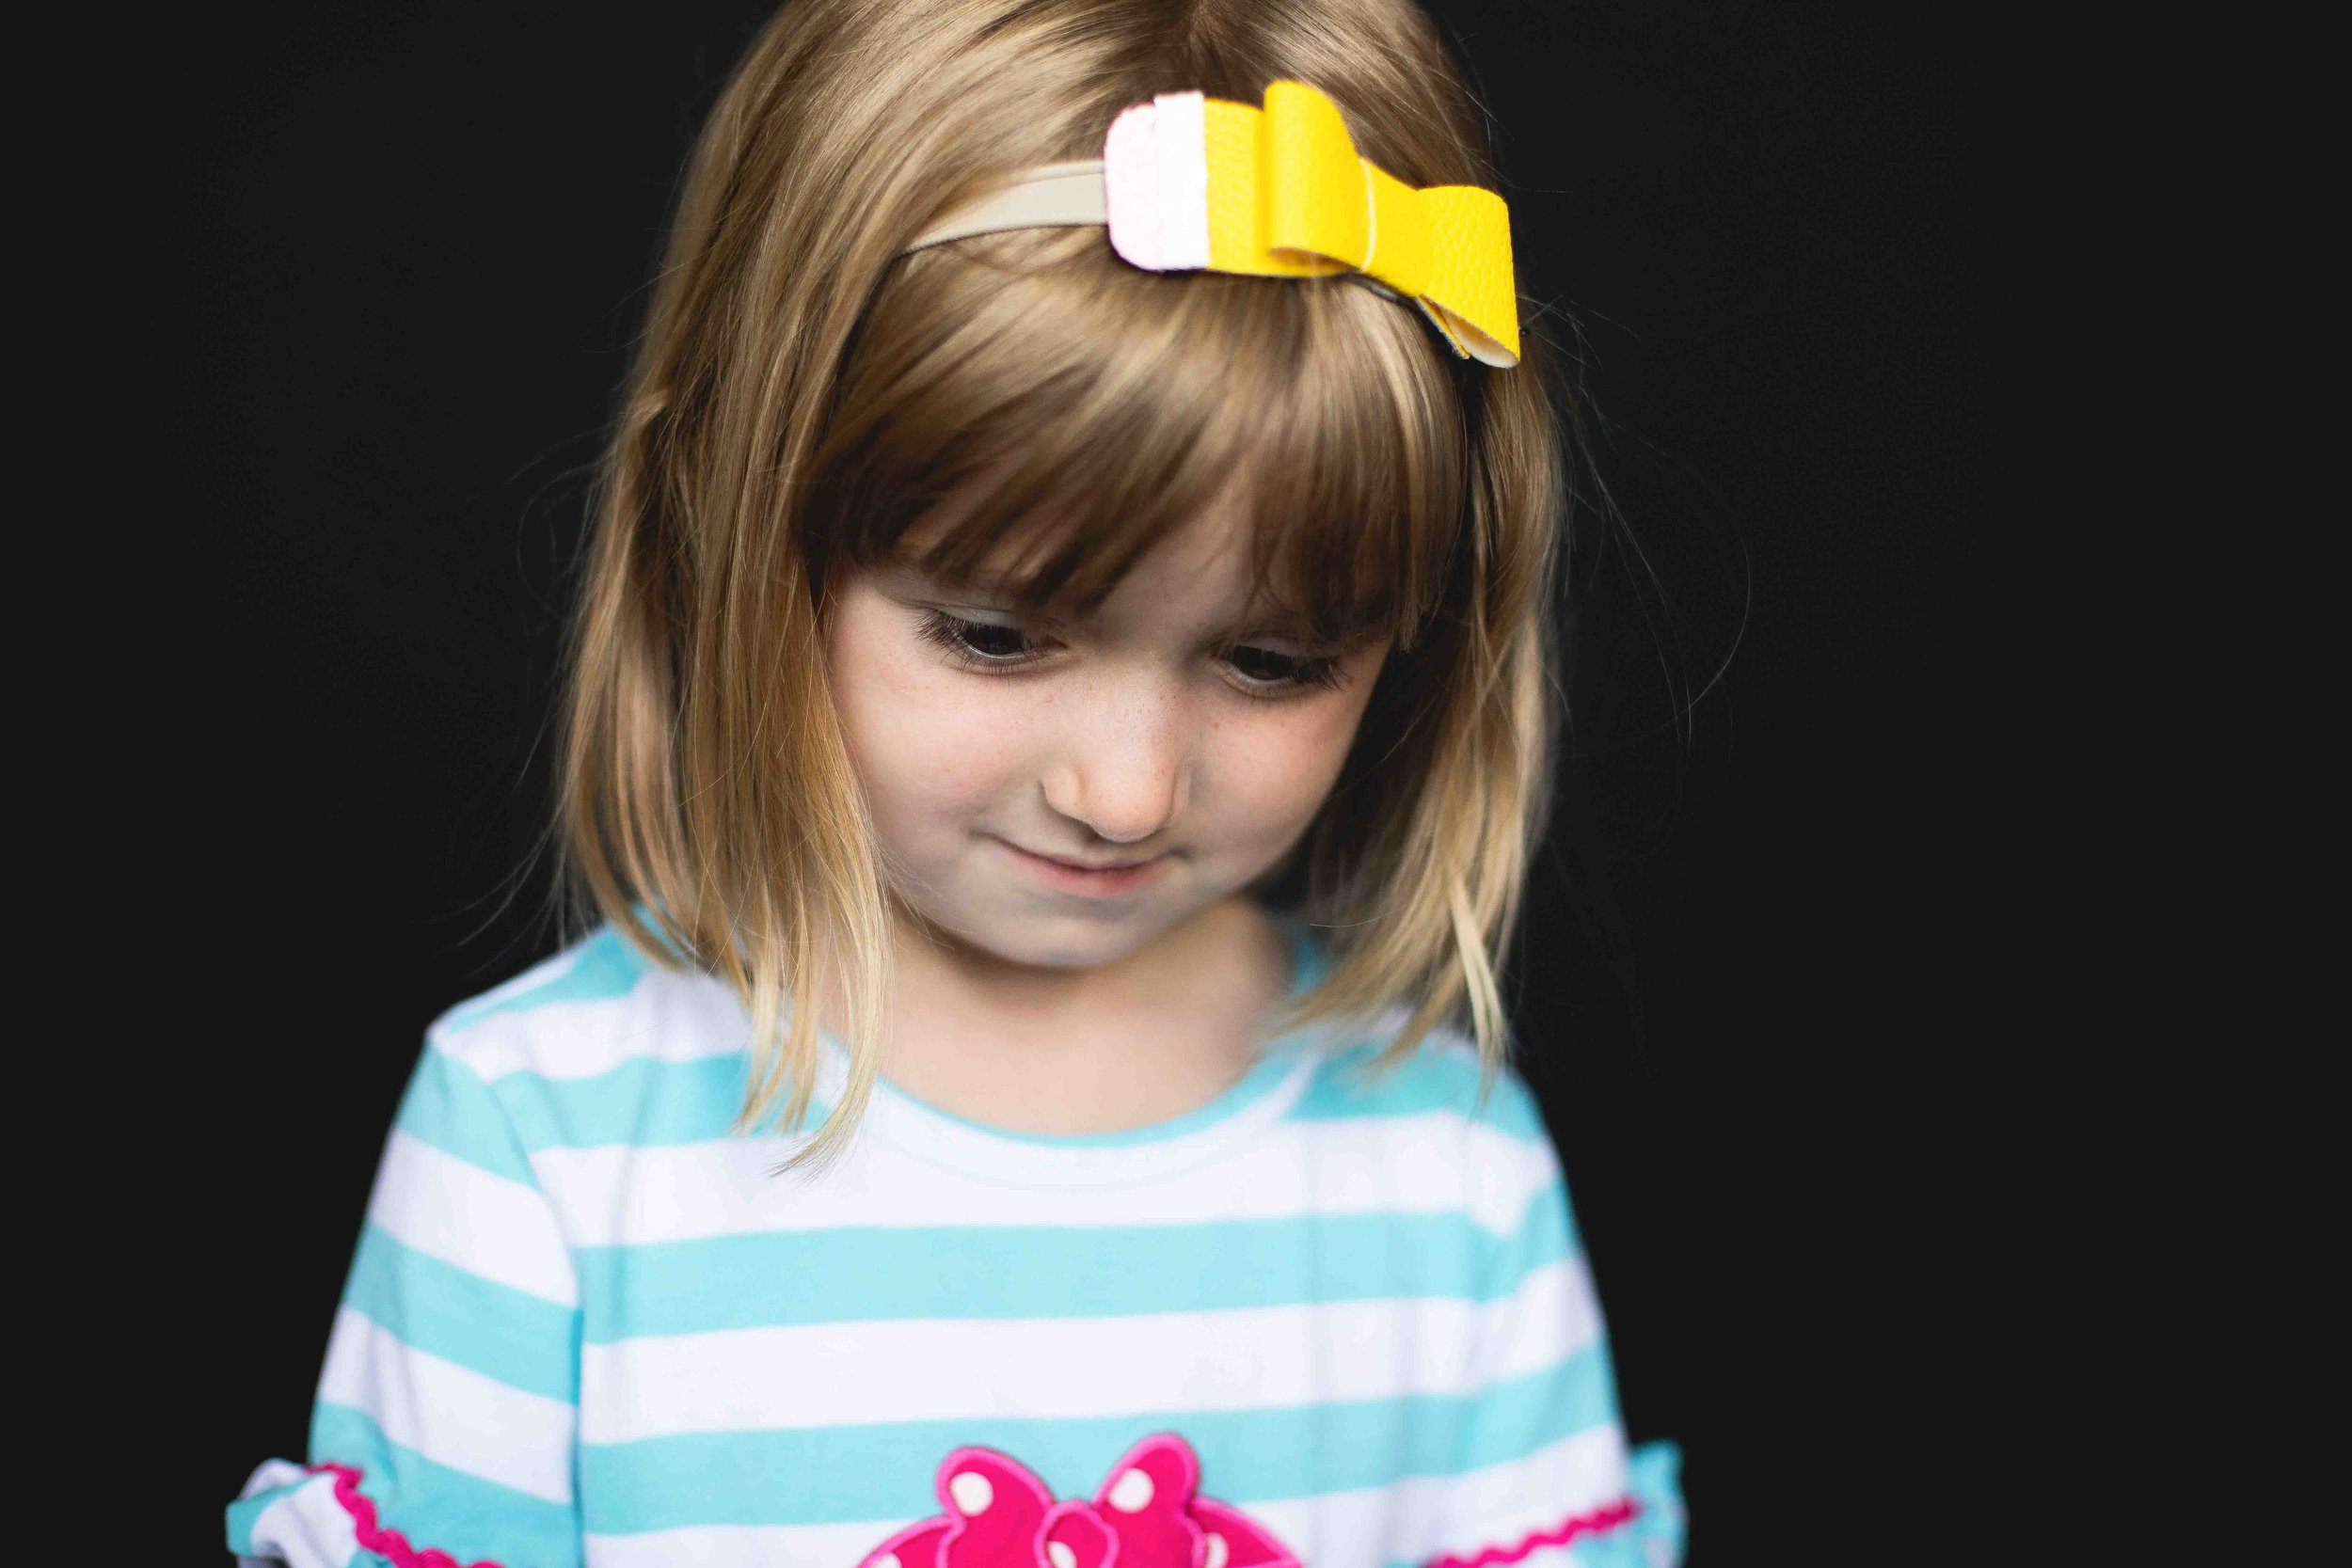 20180913_7701-- color--5day--preK--4yr----45bsnowflake-pittsburgh-boutique-school-photography.jpg